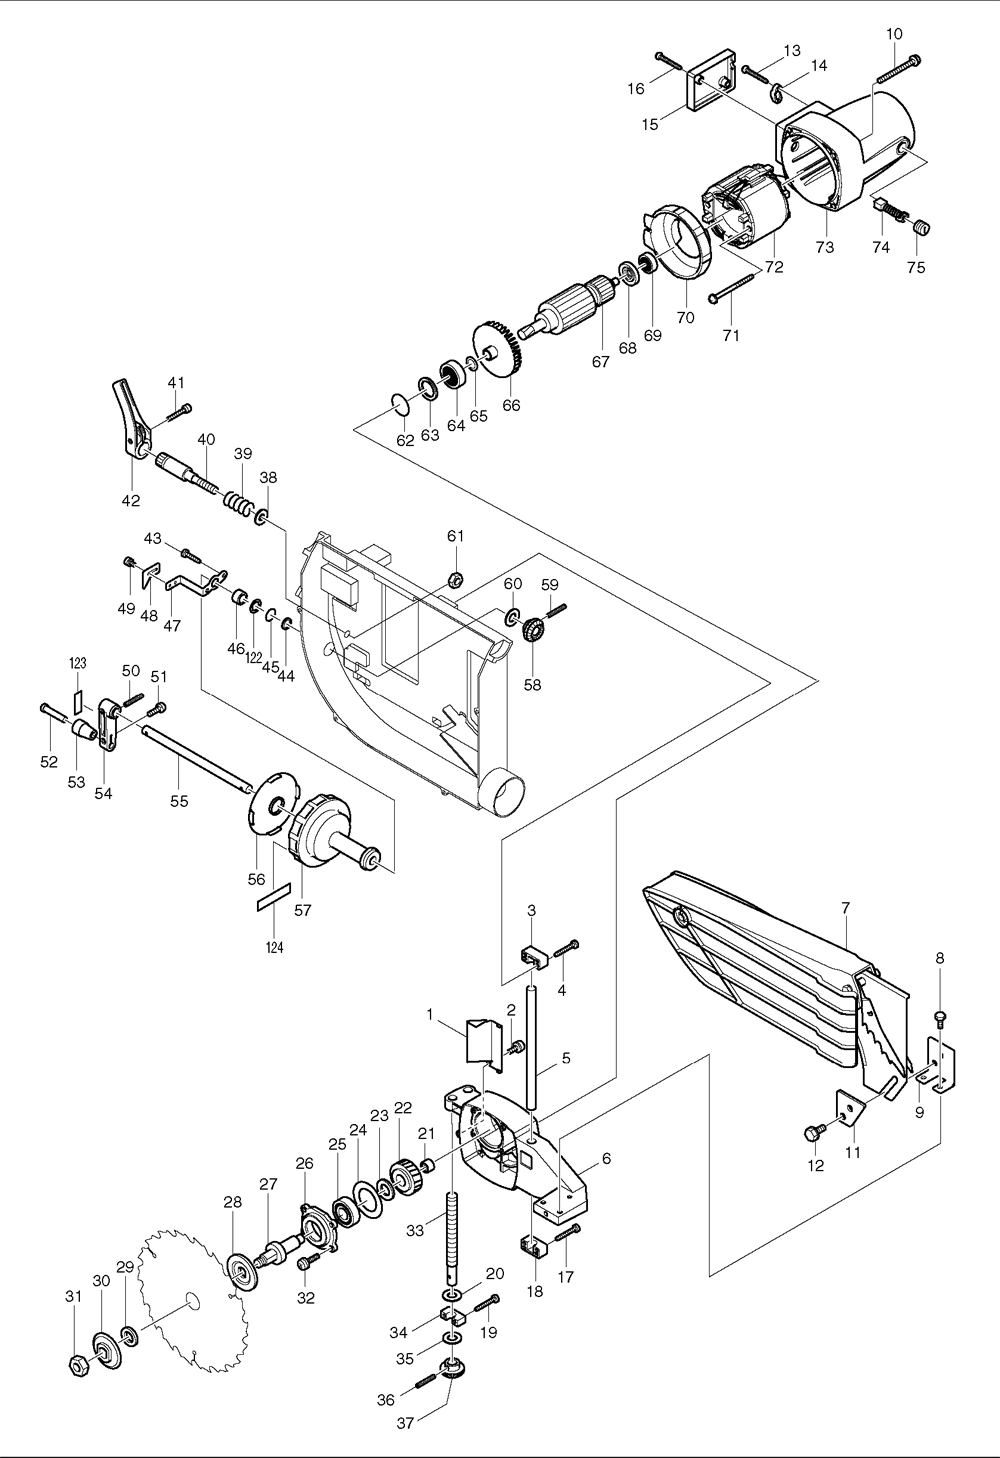 Makita 2703 Wiring Diagram : 26 Wiring Diagram Images